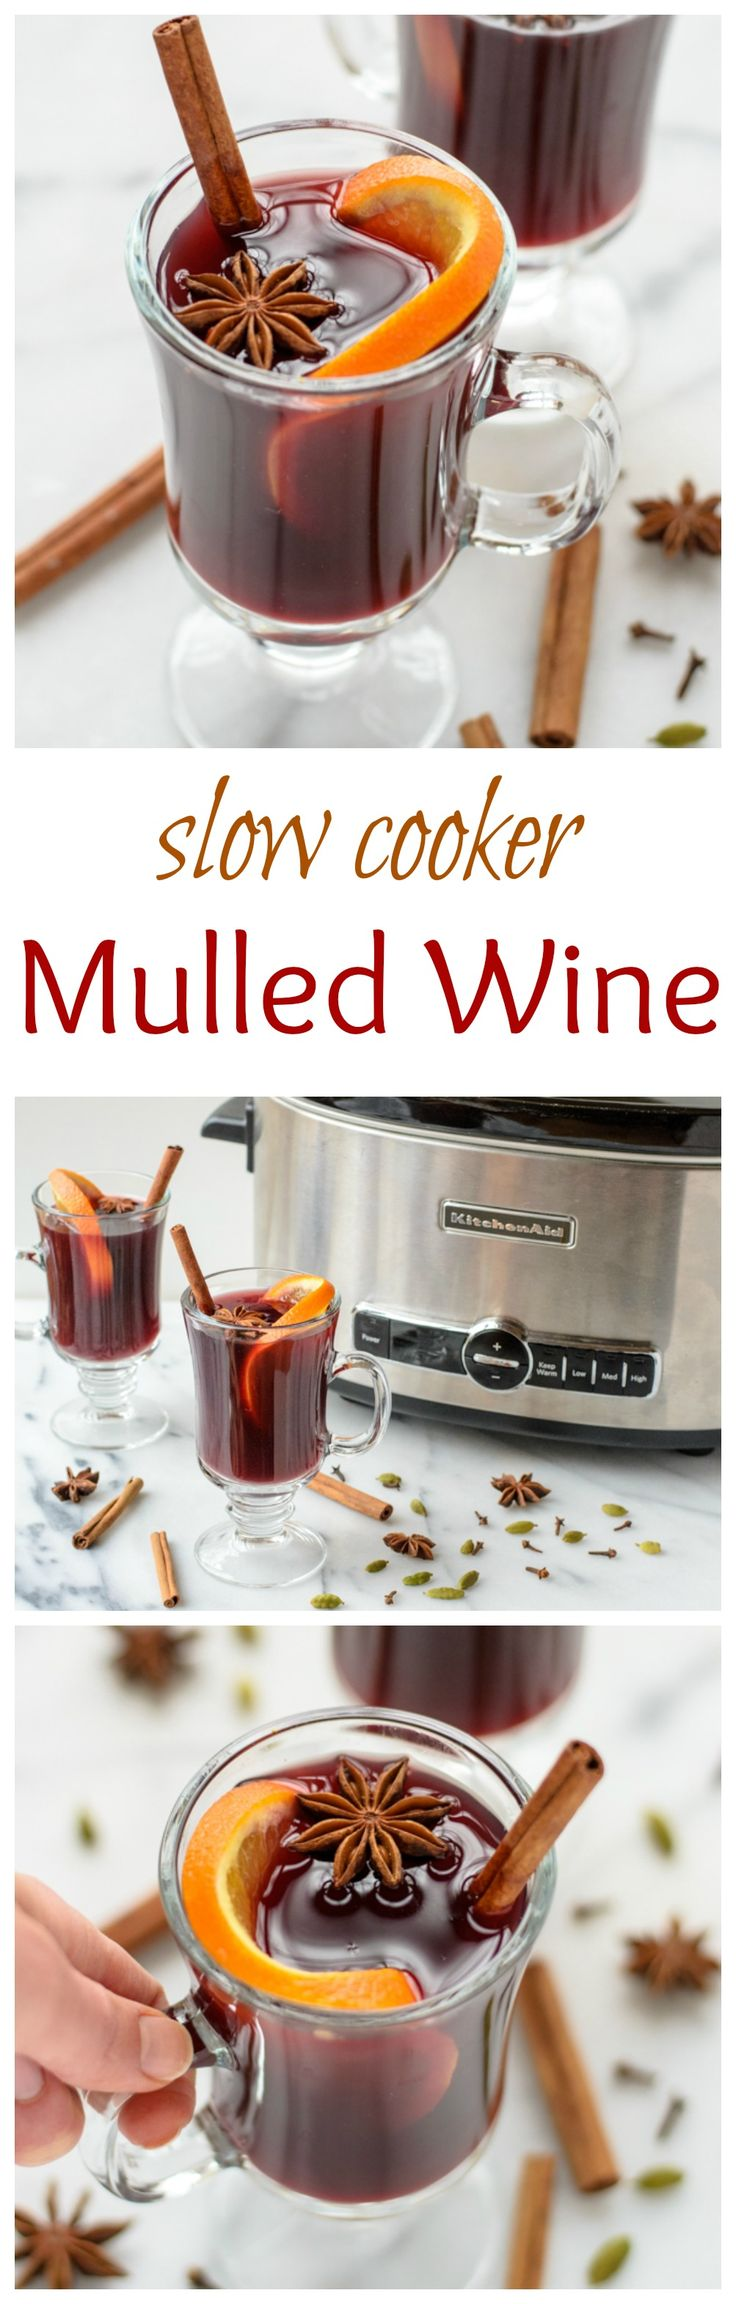 Slow Cooker Mulled Wine. Wine simmered with spices, brandy, and apple ciders makes a delicious and budget friendly holiday party drink.